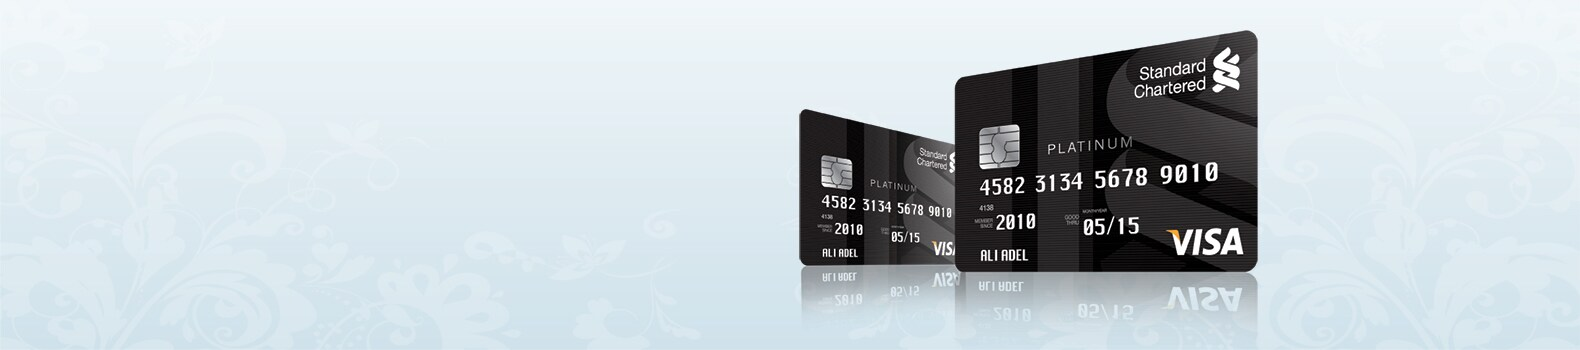 Visa platinum credit card the standard chartered platinum credit card comes packed with a host of privileges and rewards designed to bring you more value than ever before reheart Images